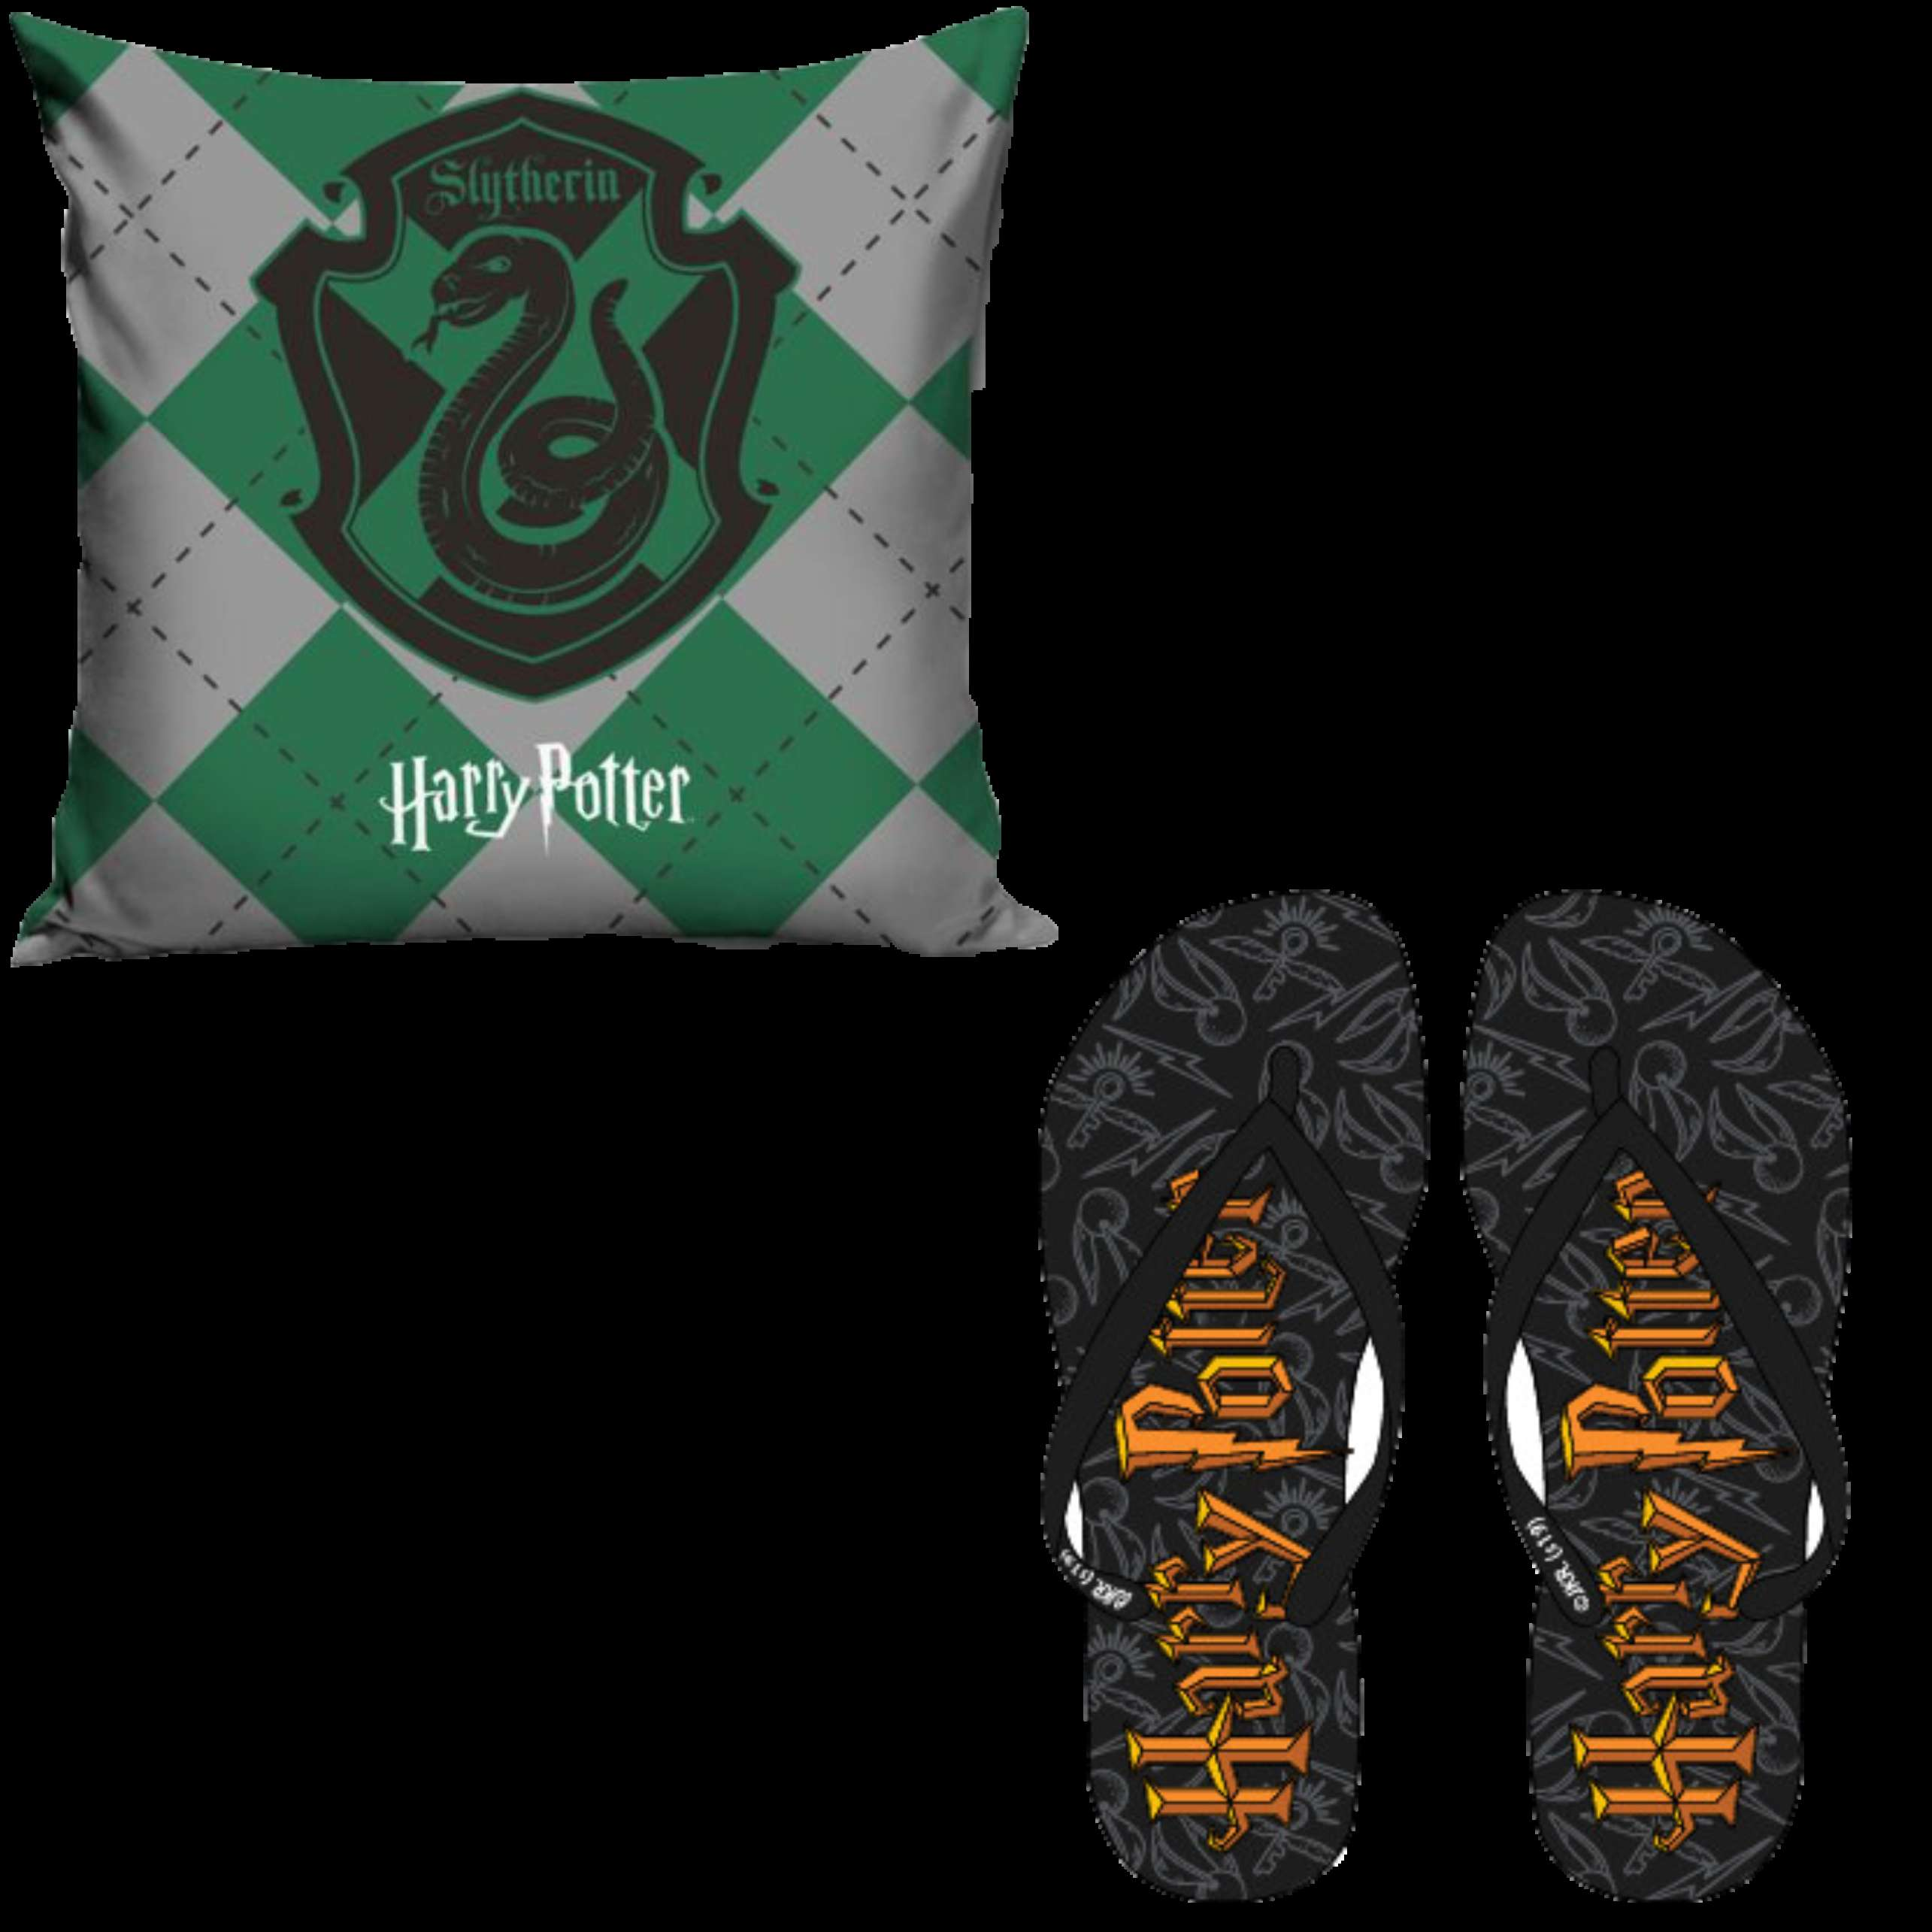 OFFICIAL WARNER BROS HARRY POTTER SLYTHERIN PILLOW CASE AND FLIP FLOPS